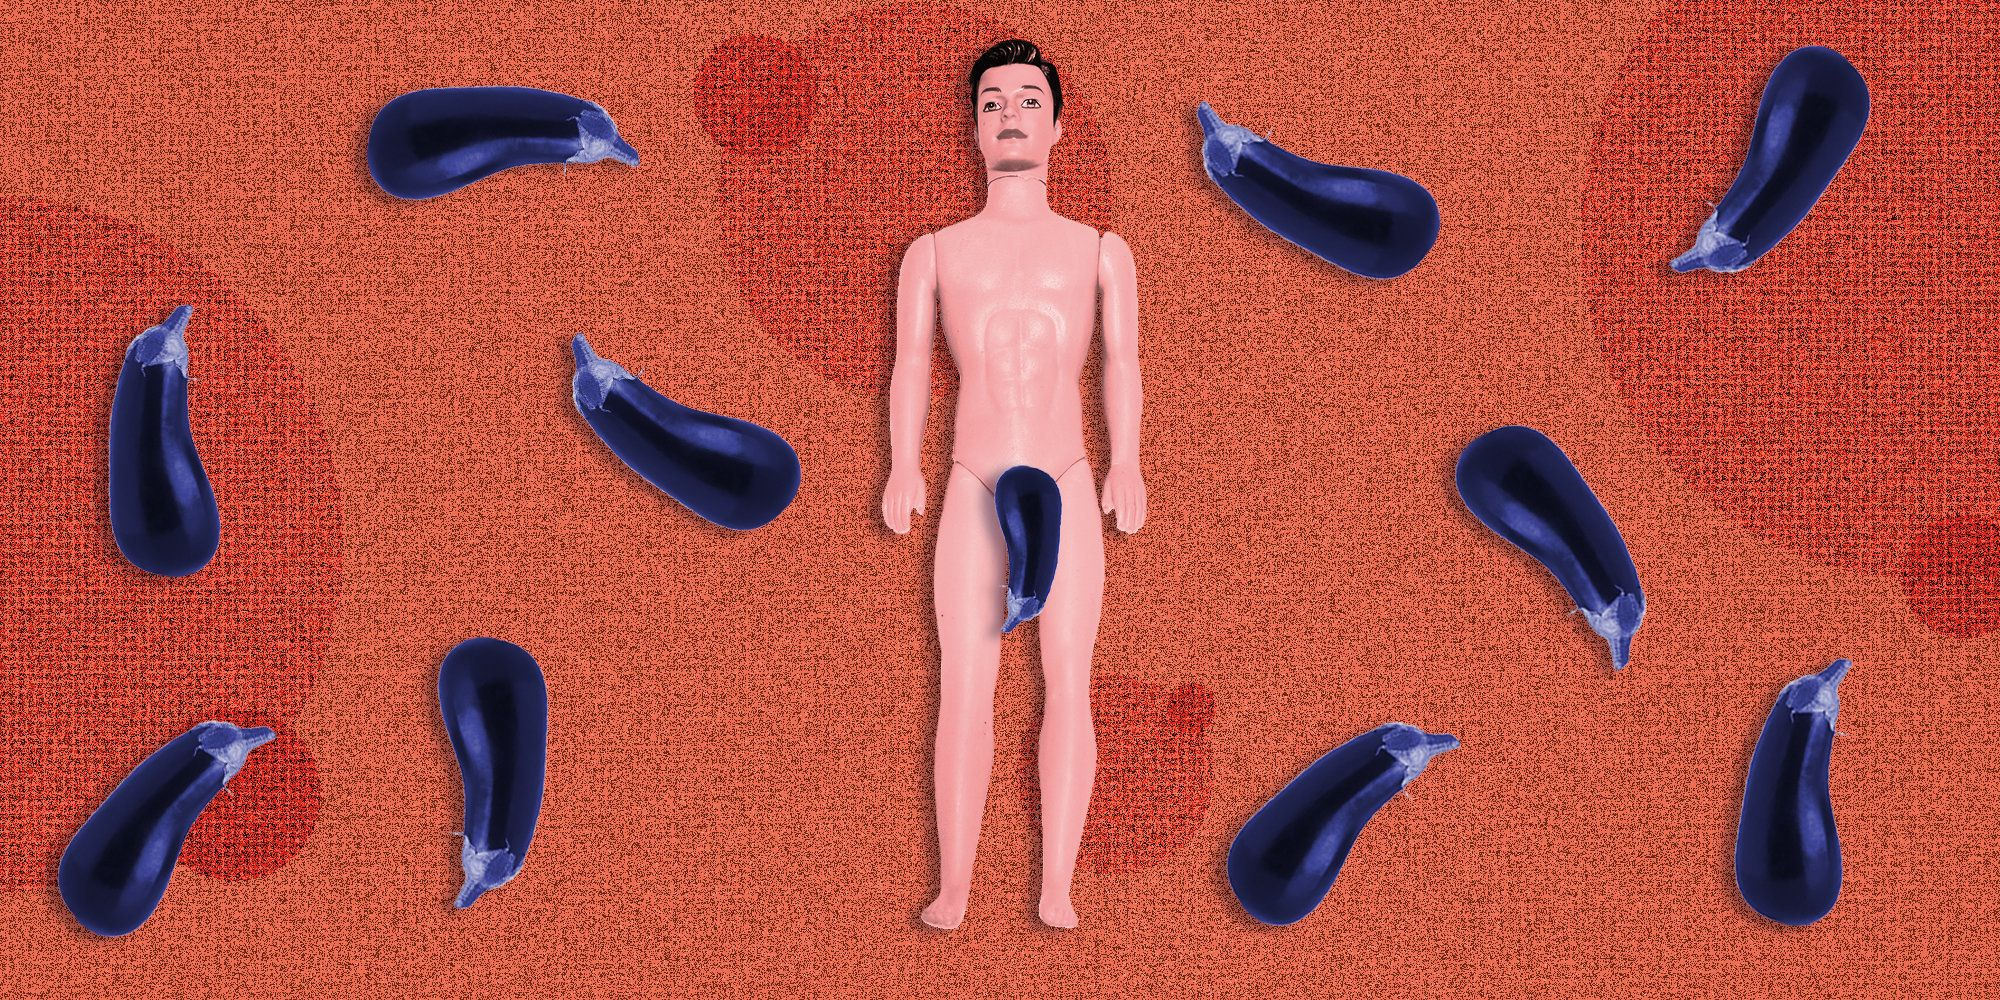 Myths about a man's penis size and shape